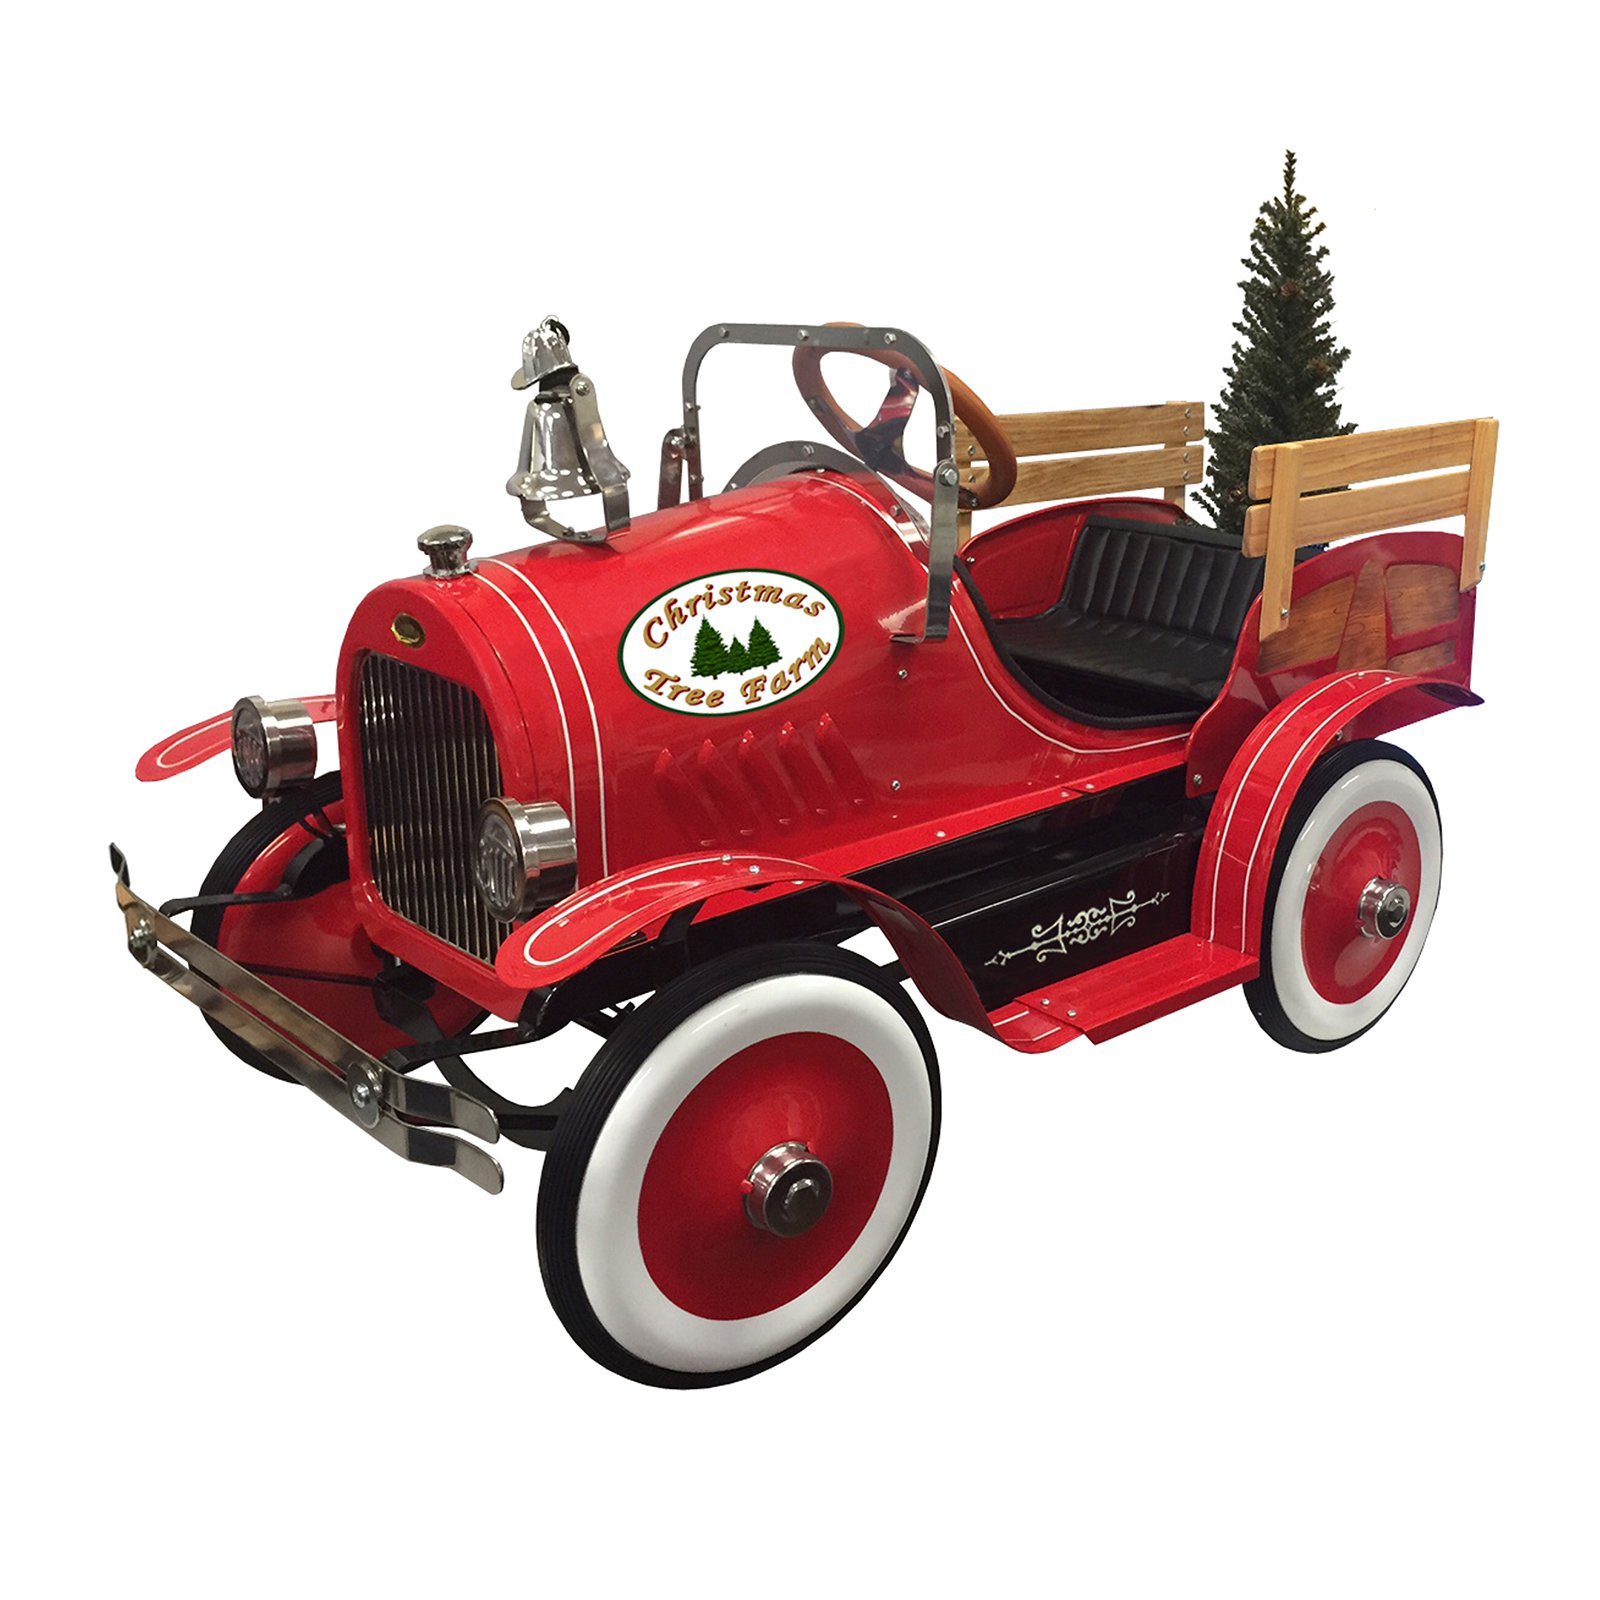 Dexton Kids Deluxe Christmas Tree Delivery Truck Roadster Pedal Car by Dexton Kids